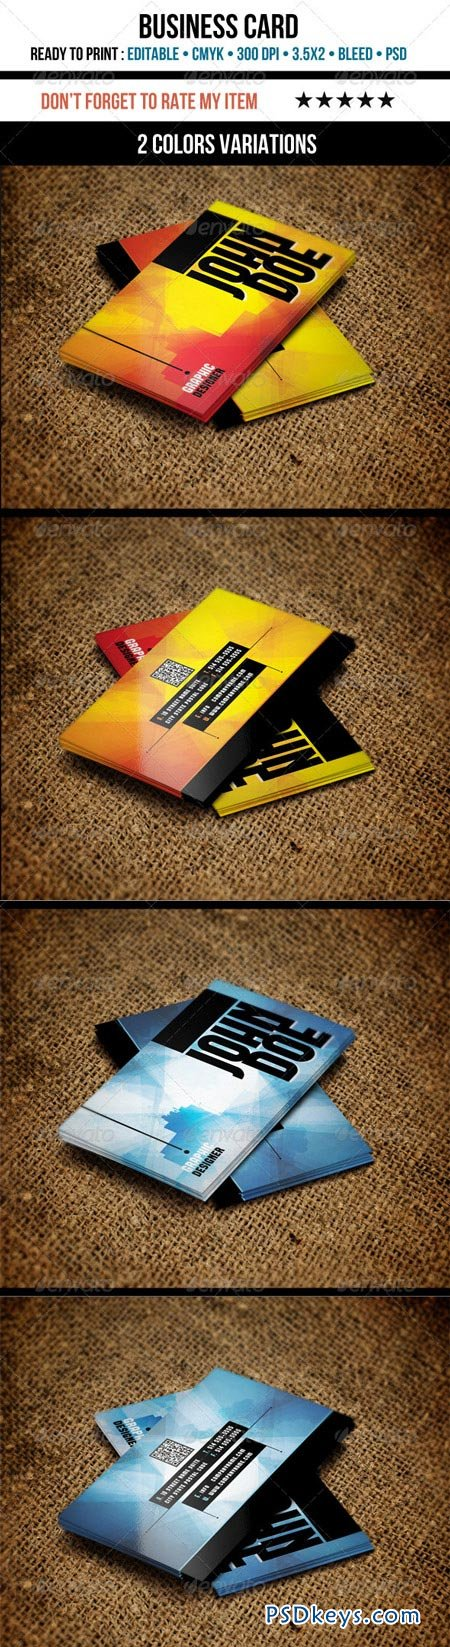 Grunge Business Cards 3501385